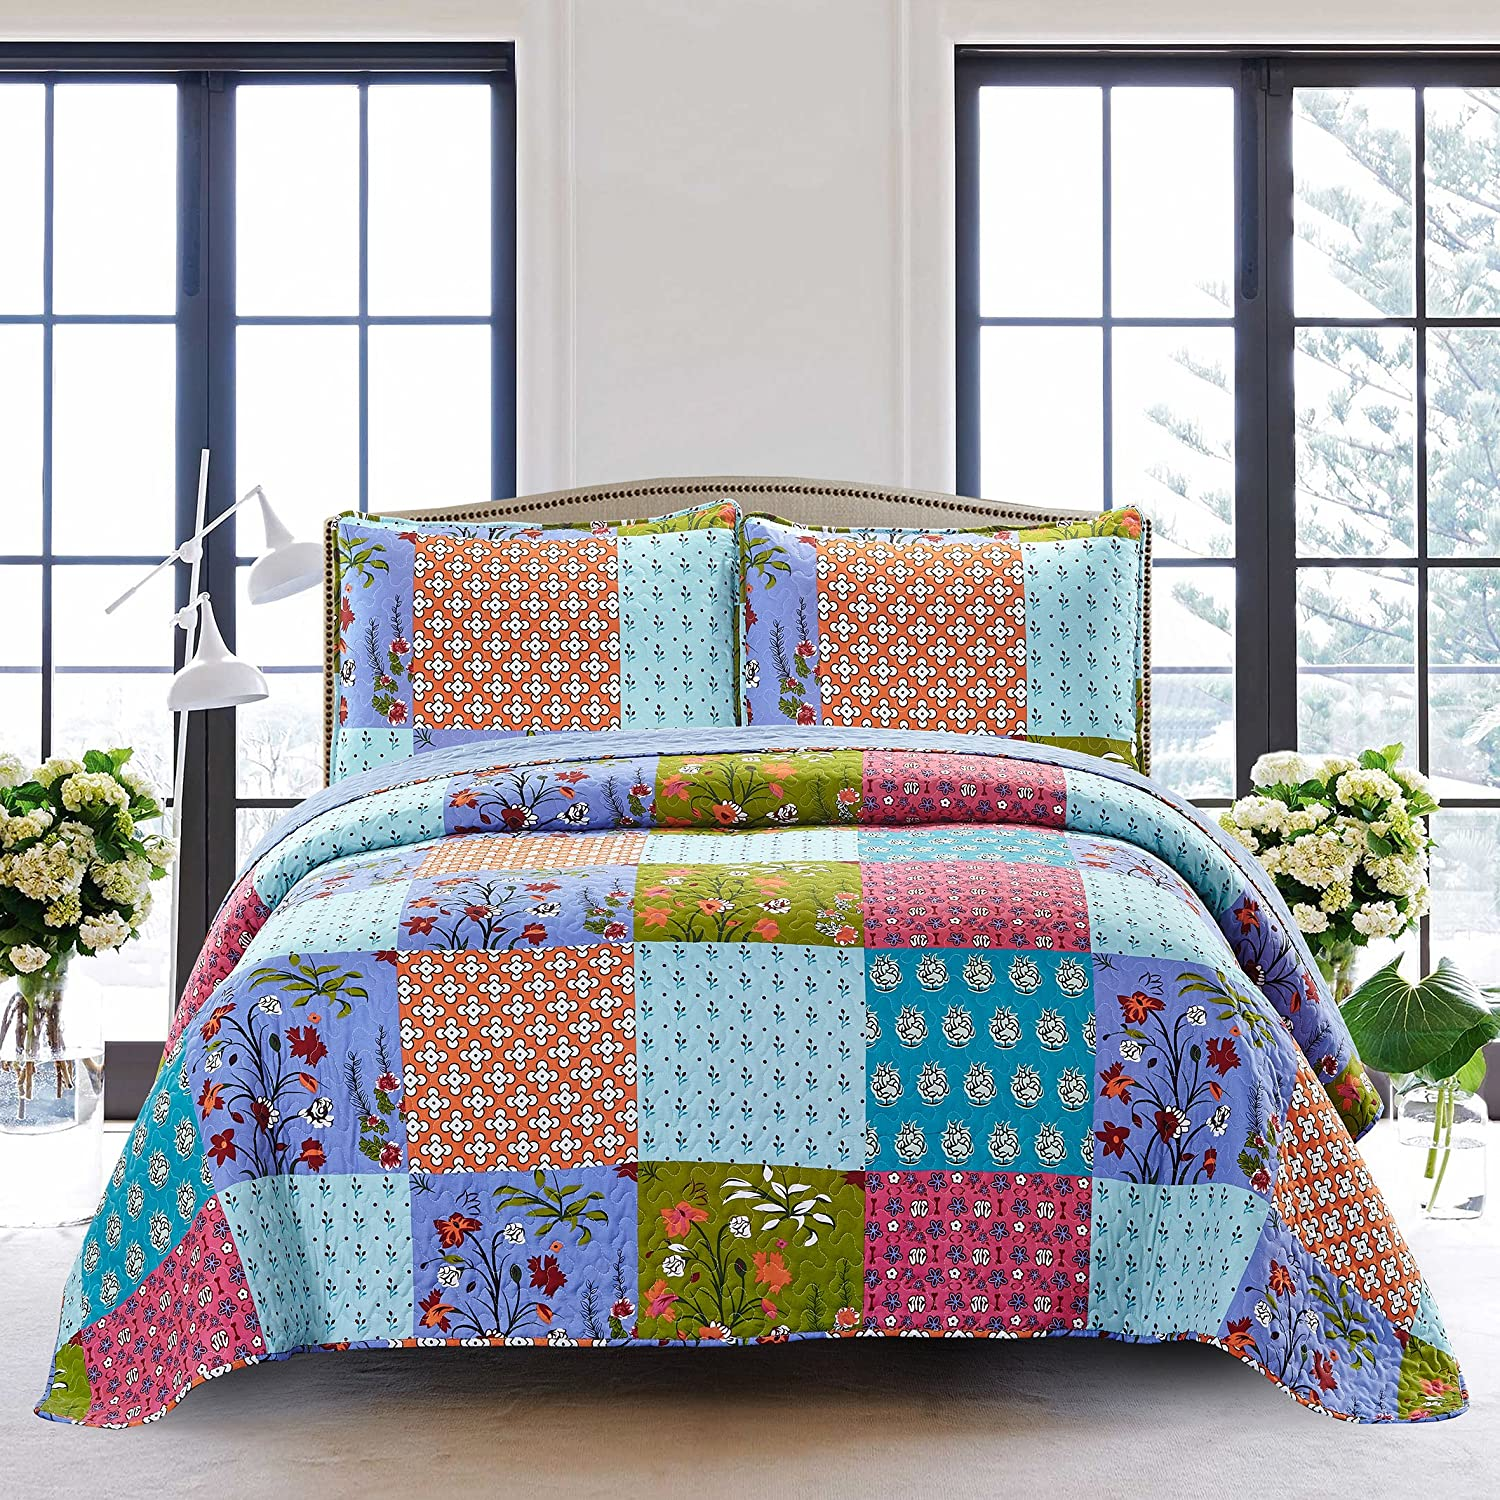 SLPR All is Bright 3-Piece Lightweight Printed Quilt Set (Queen